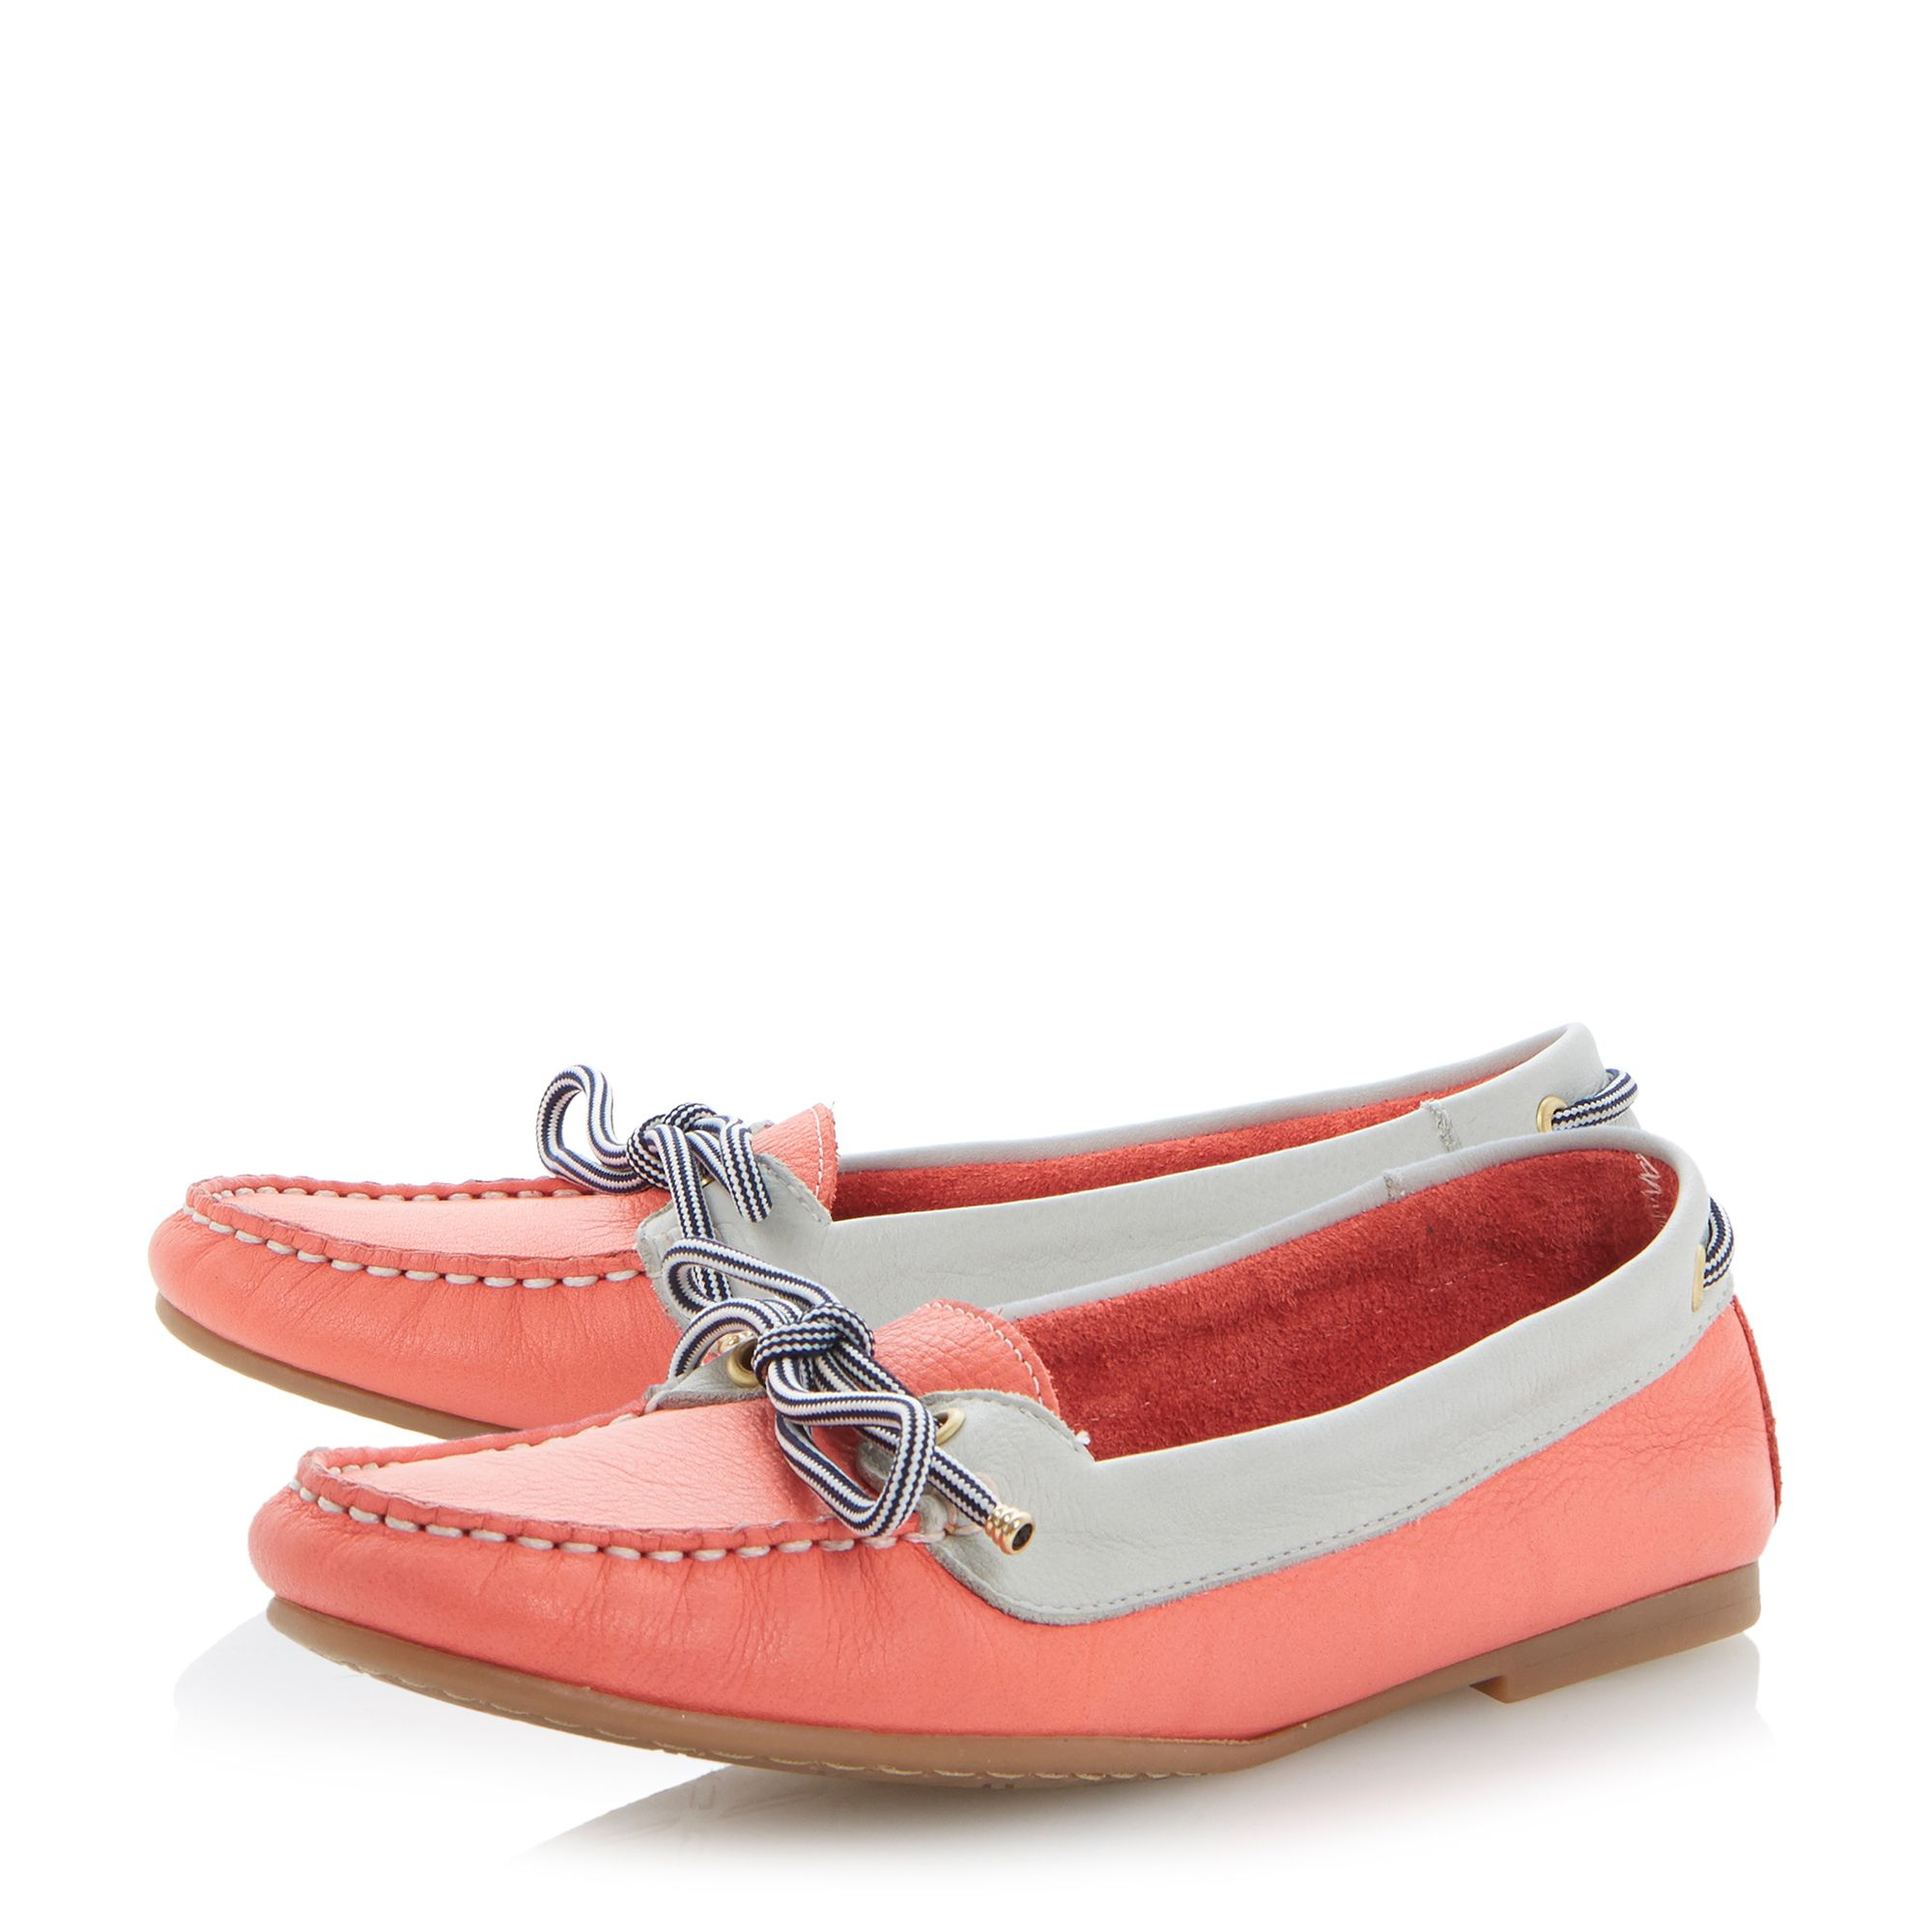 dune lautical suede toe flat deck shoes in pink lyst